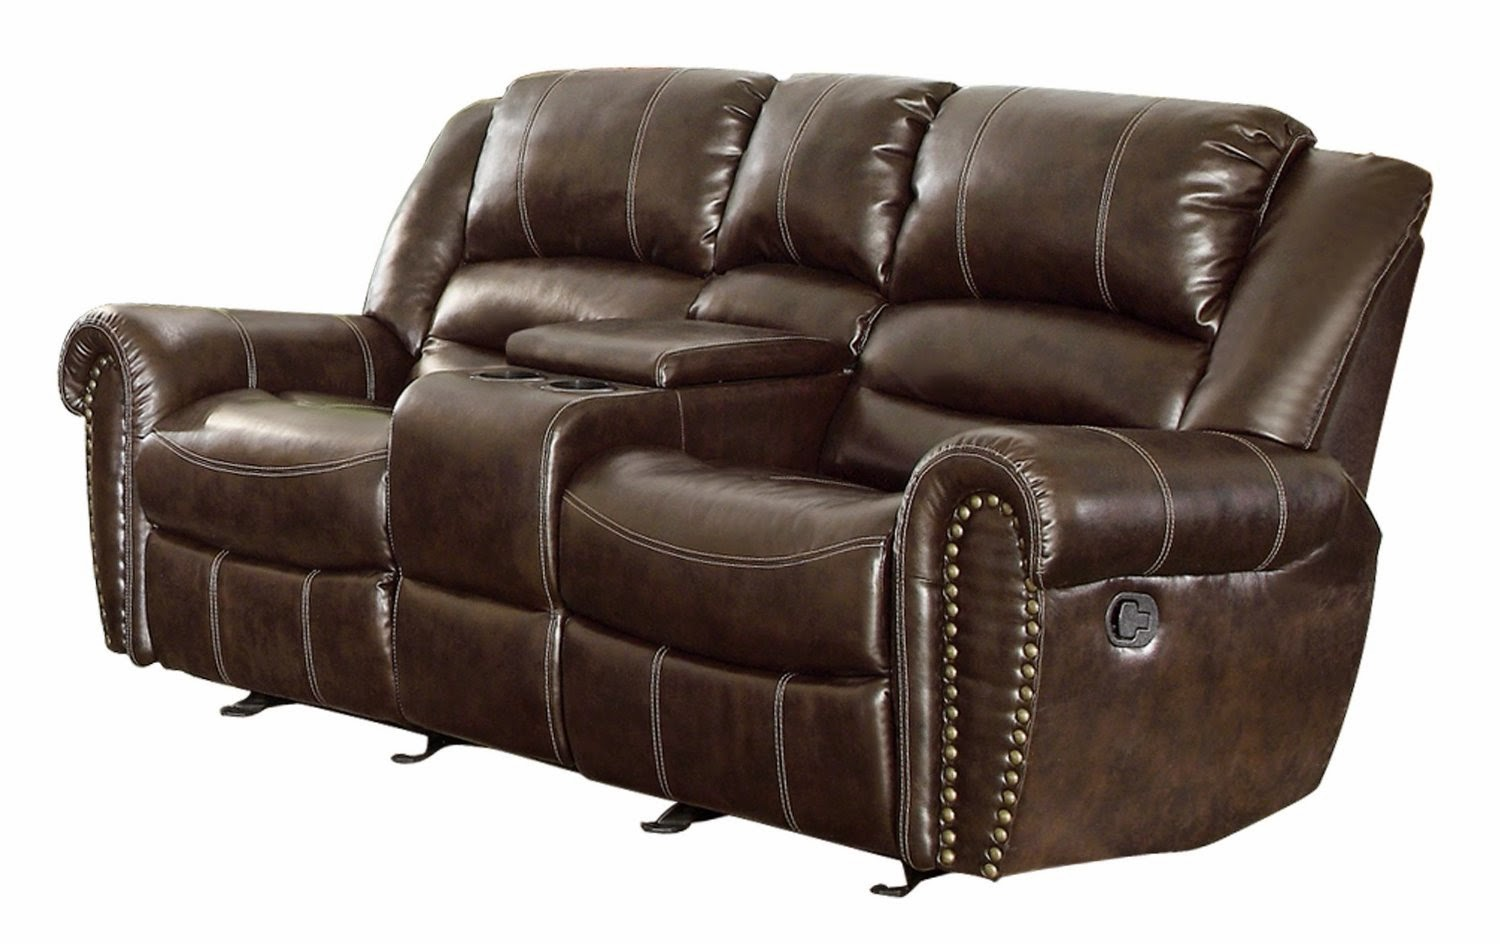 Reclining sofa loveseat and chair sets two seat reclining Reclining leather sofa and loveseat